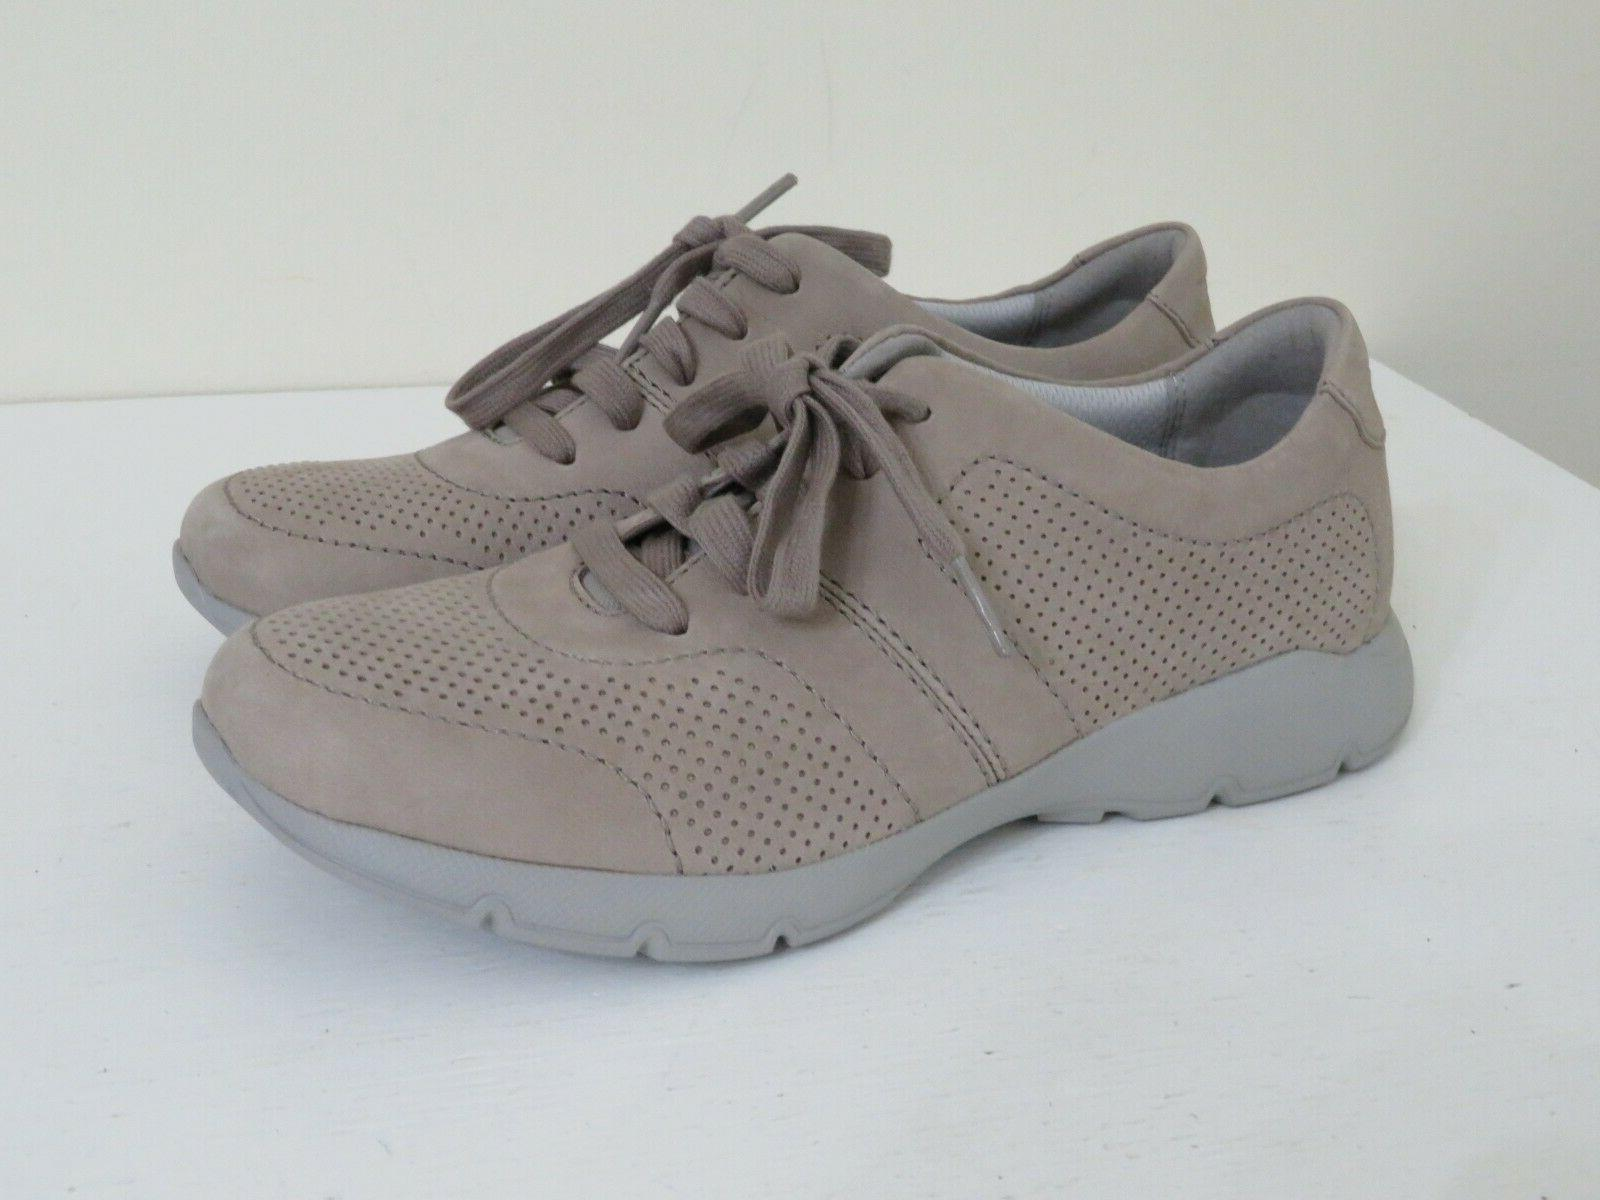 taupe leather lace up sneakers shoes new